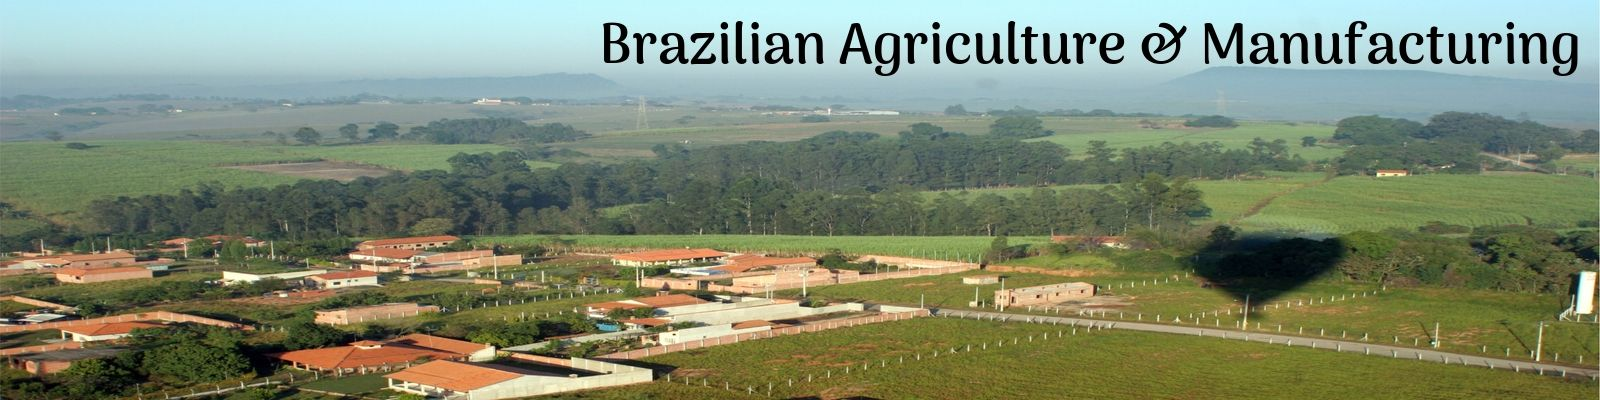 Brazilian Agriculture and Manufacturing